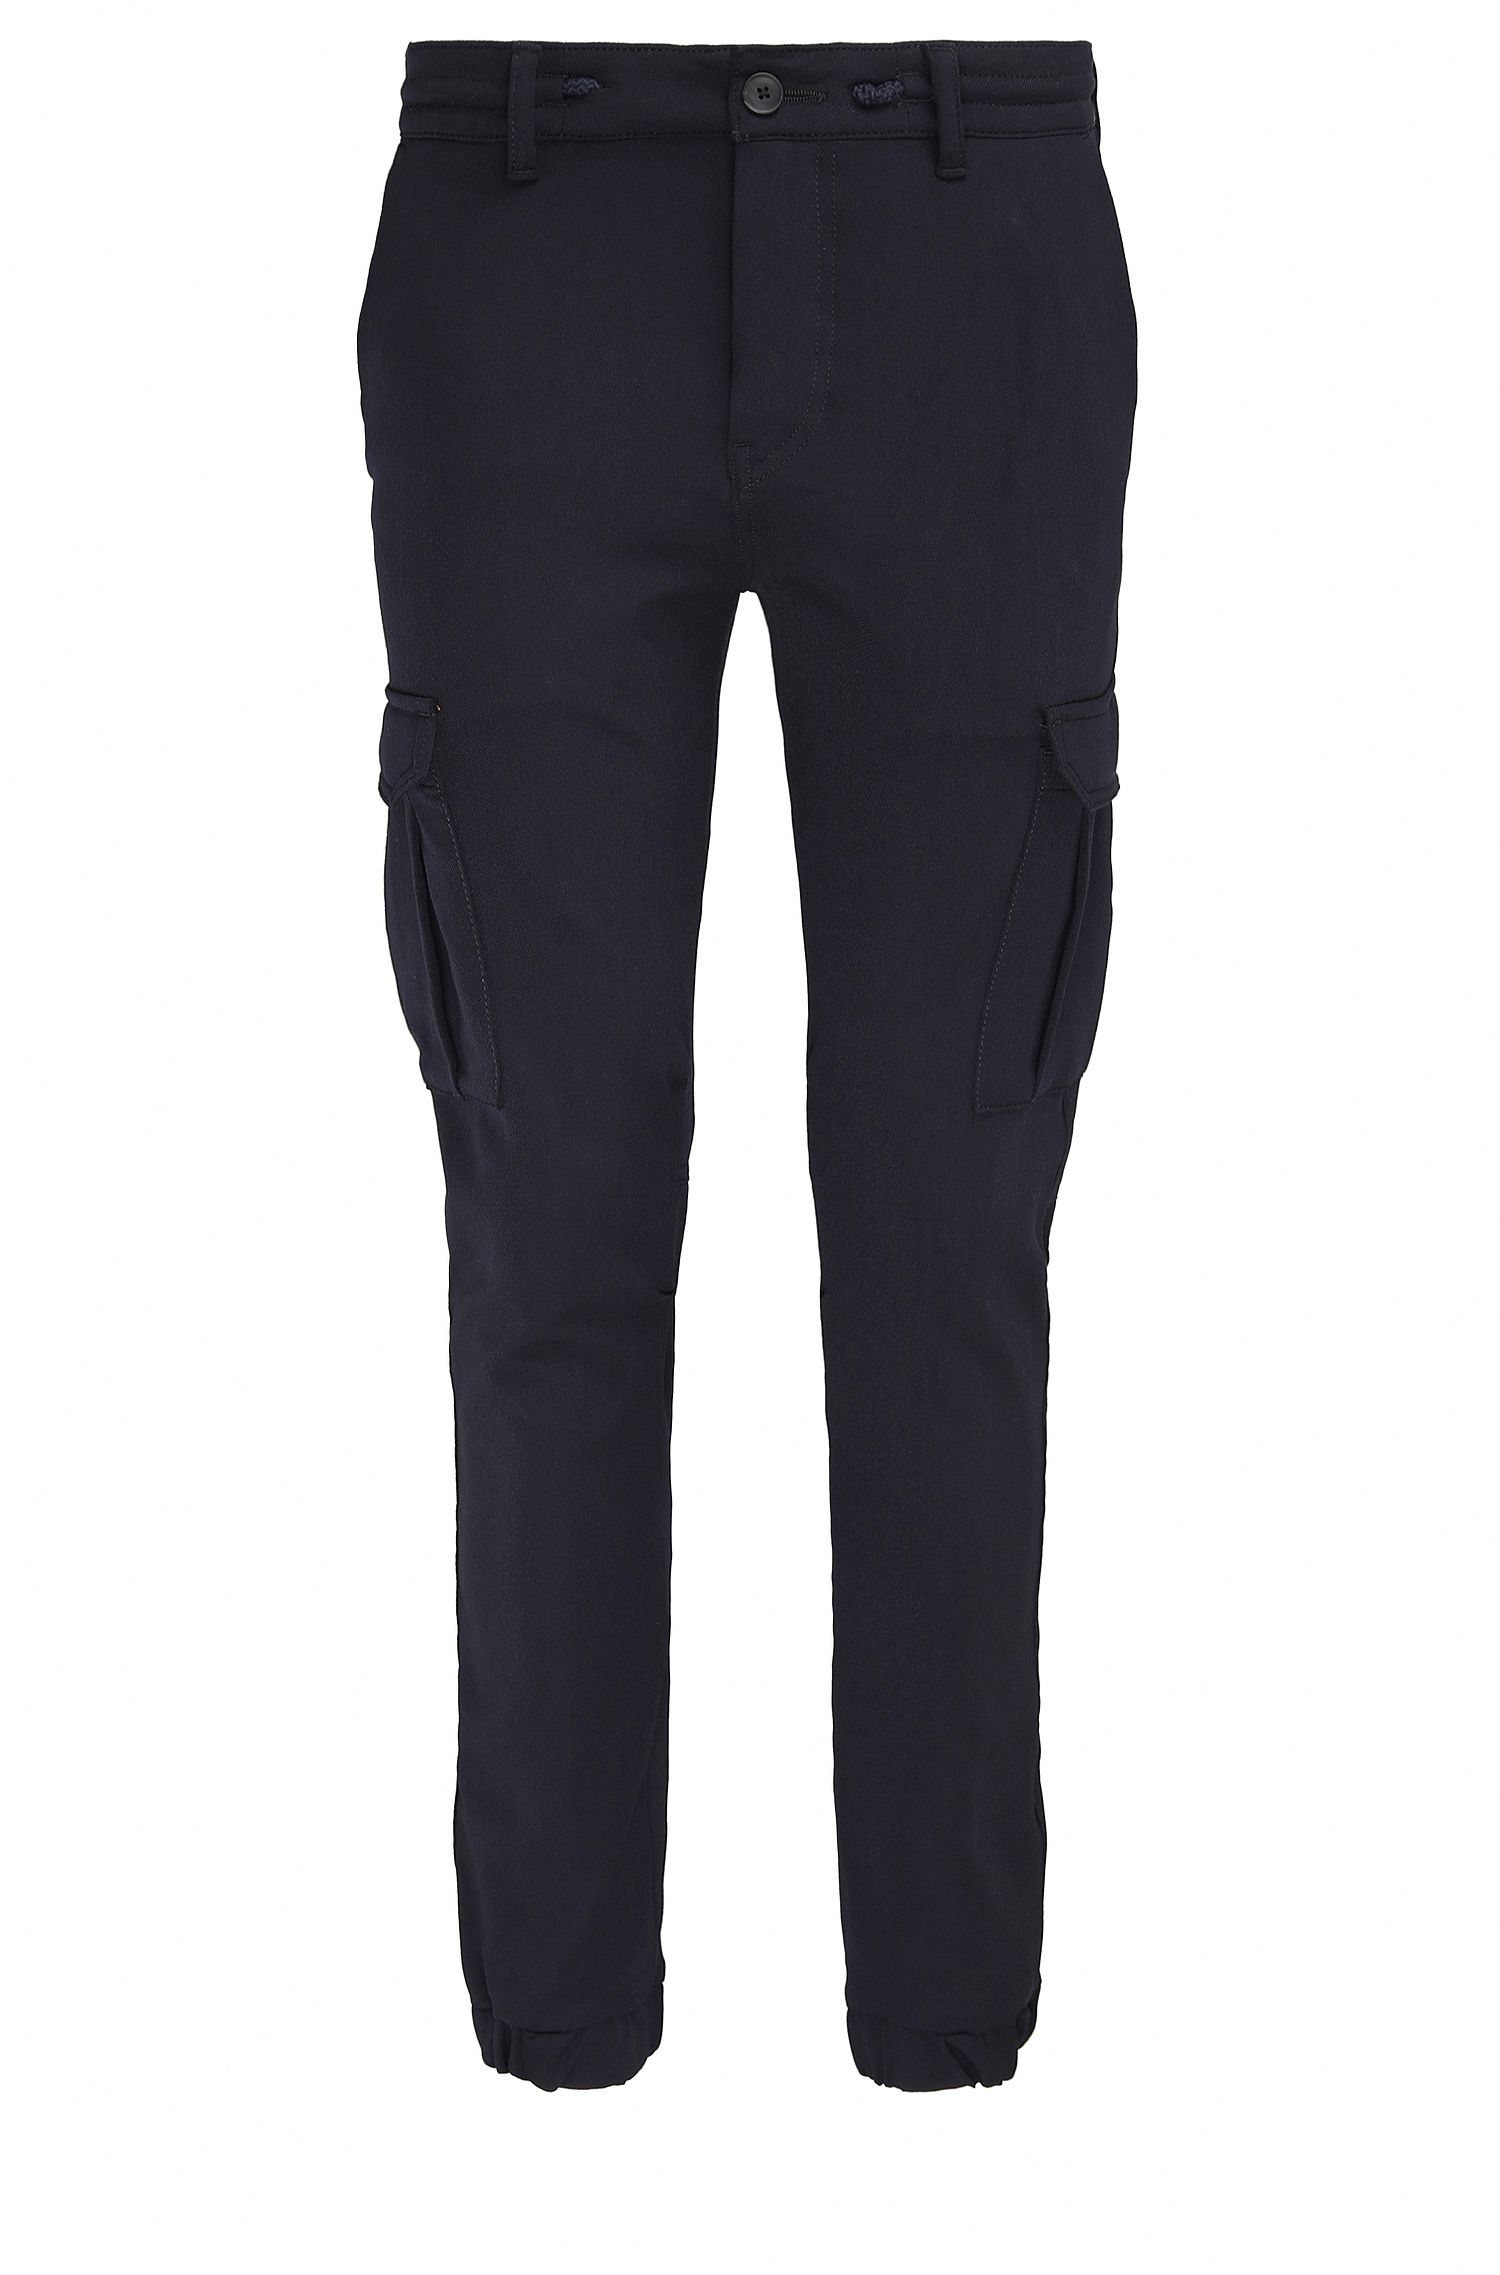 Pantaloni cargo tapered fit in twill tinto in filo